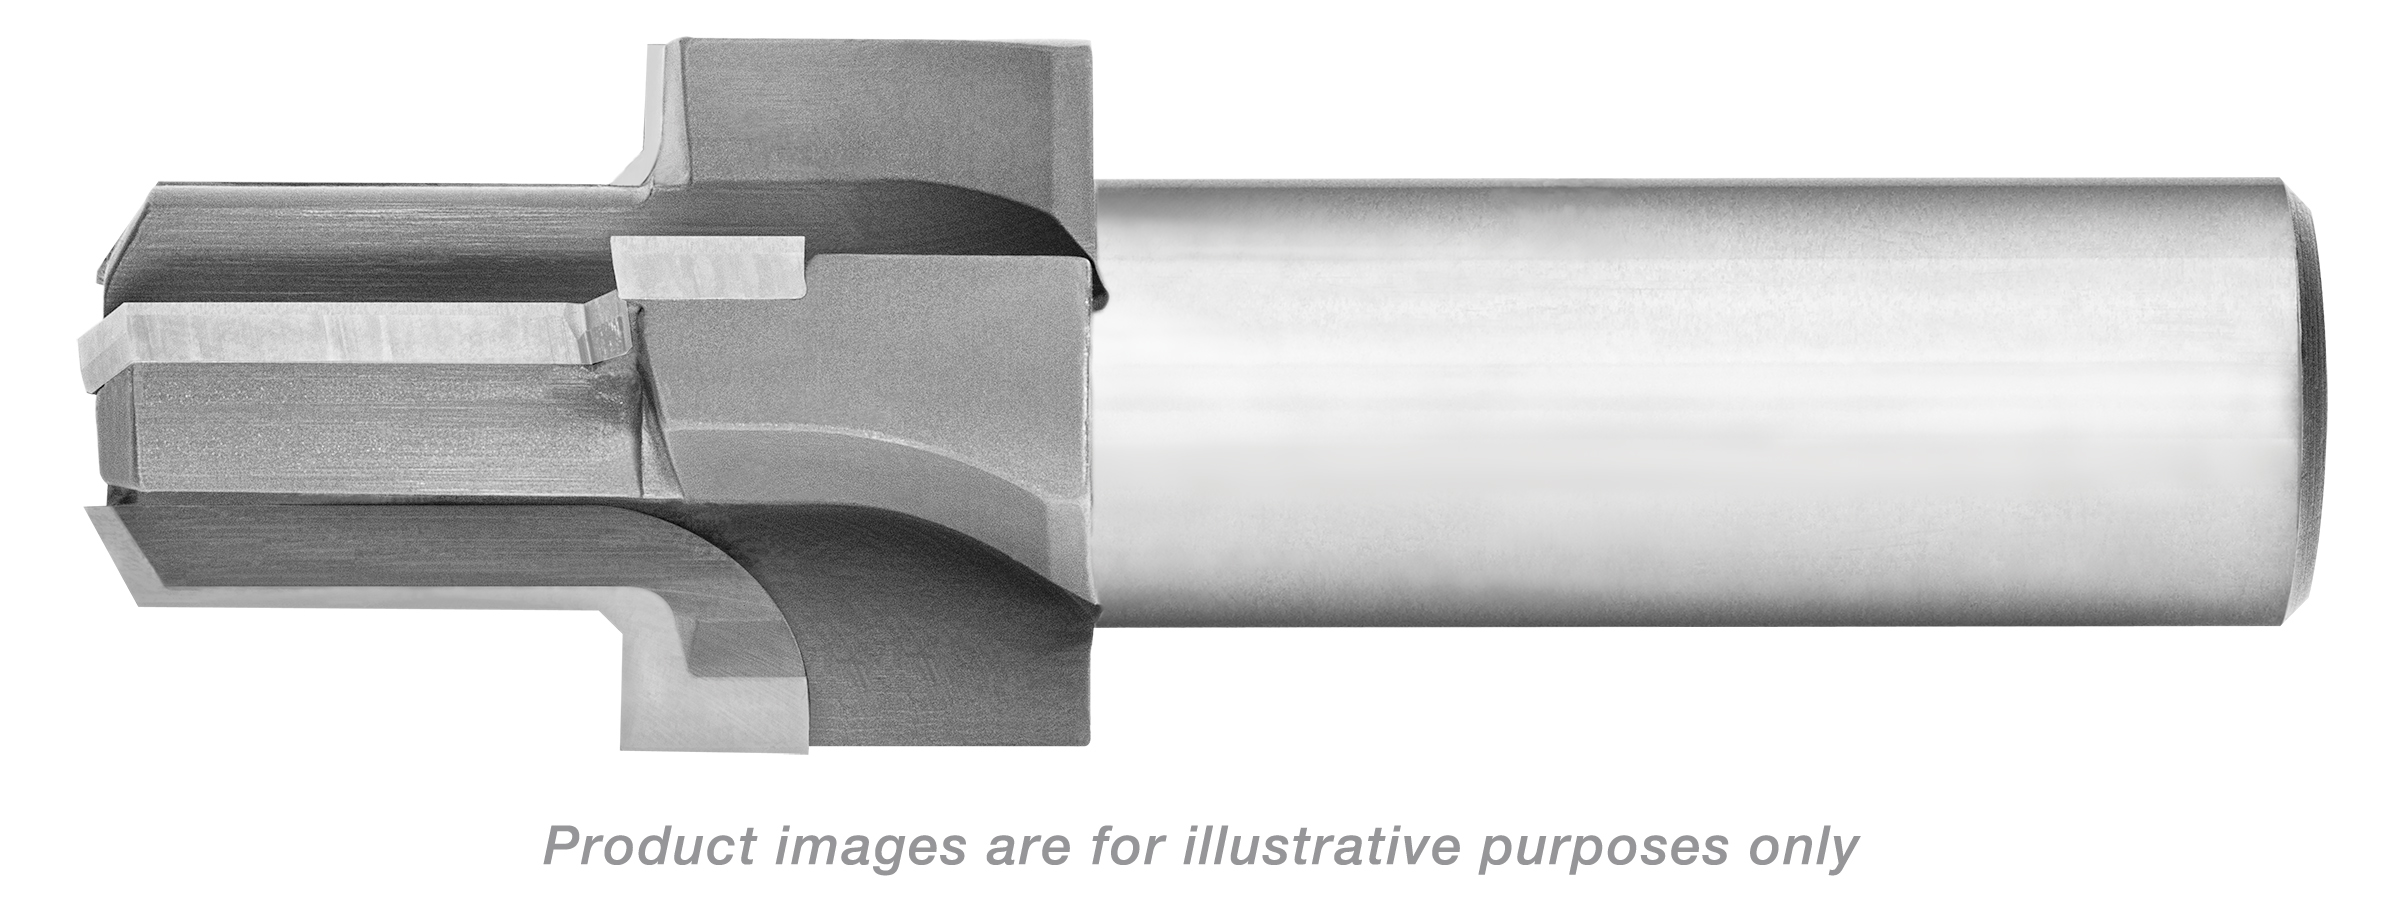 BSPP THREAD (ISO1179) PORT TOOL CARBIDE TIPPED (3/8 BSPP) 3.62 OAL